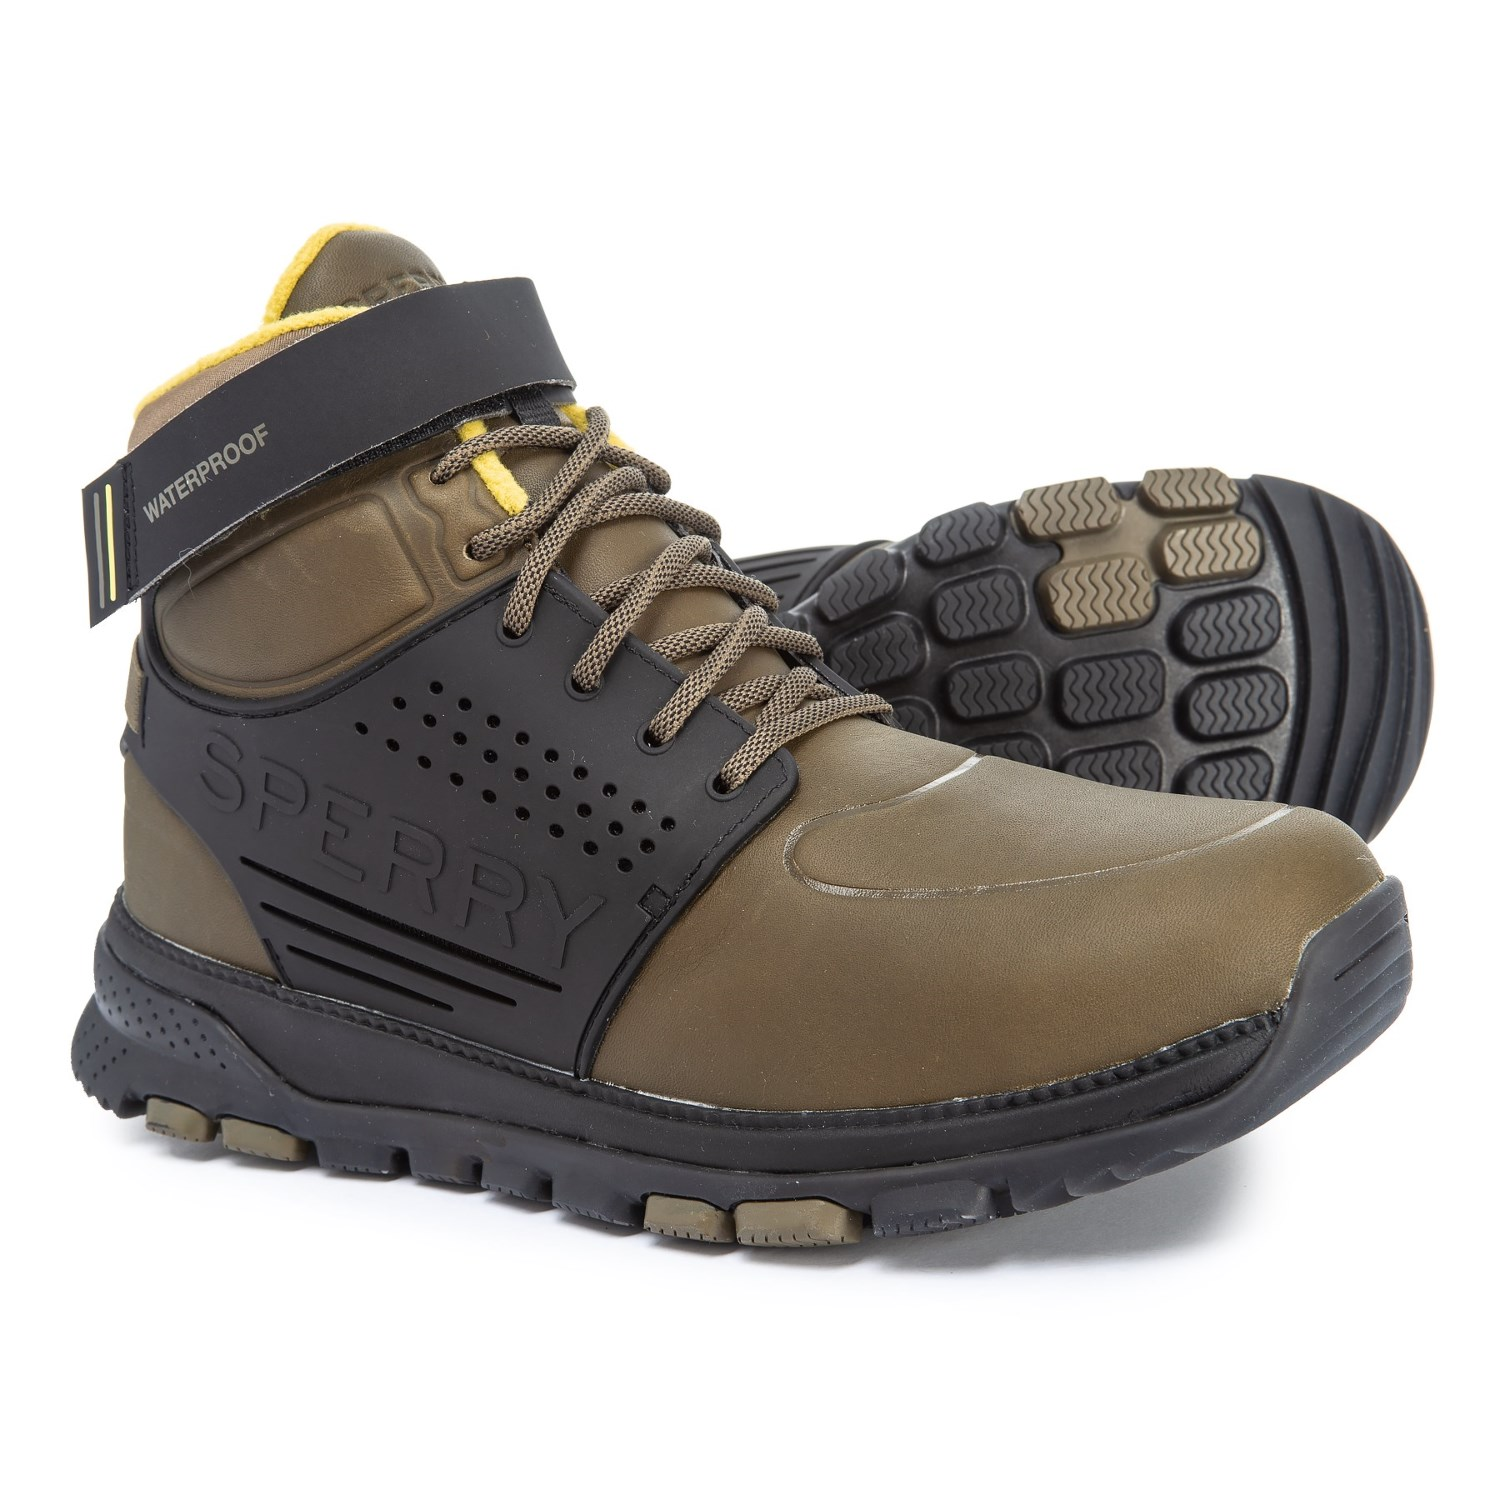 Sperry Seamount Chukka Boots (For Men)